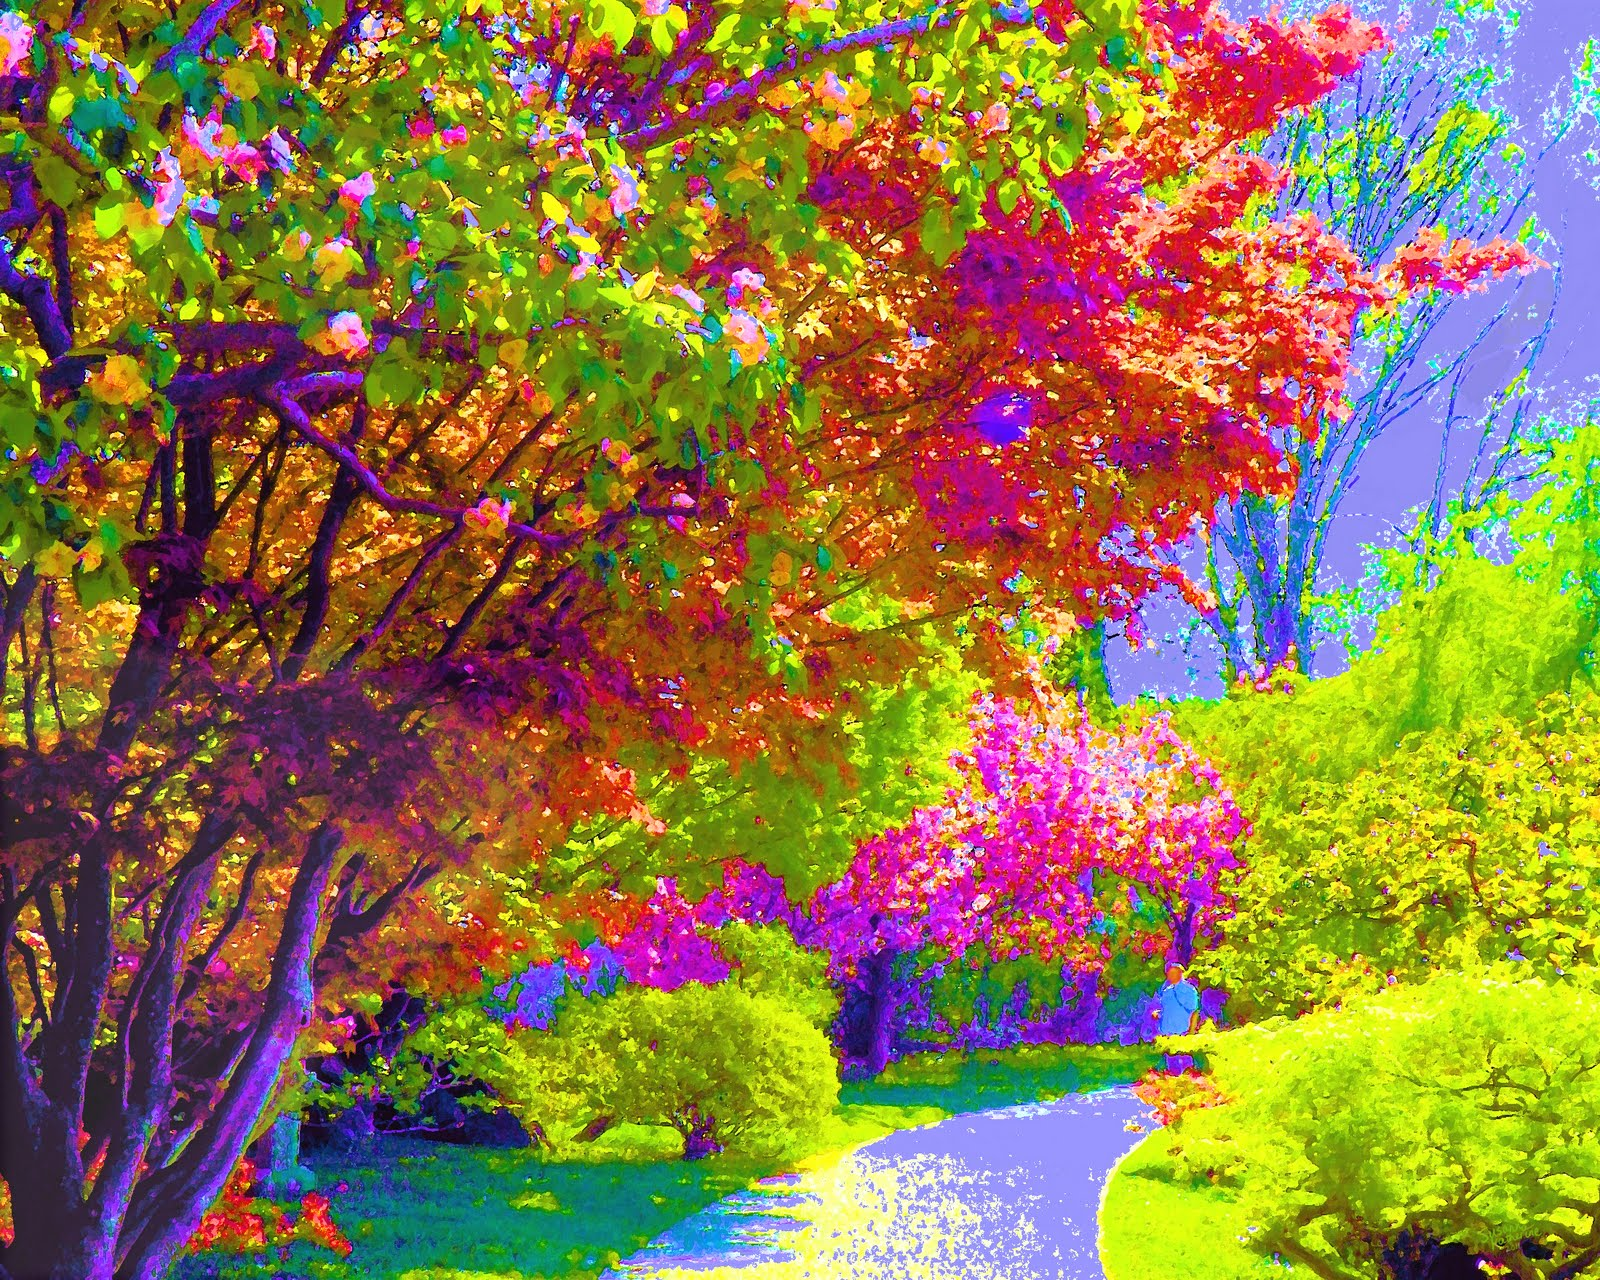 Painting Of Colorful Trees – Wallpaper – 1600 x 1280 Wallpaper Wallpaper